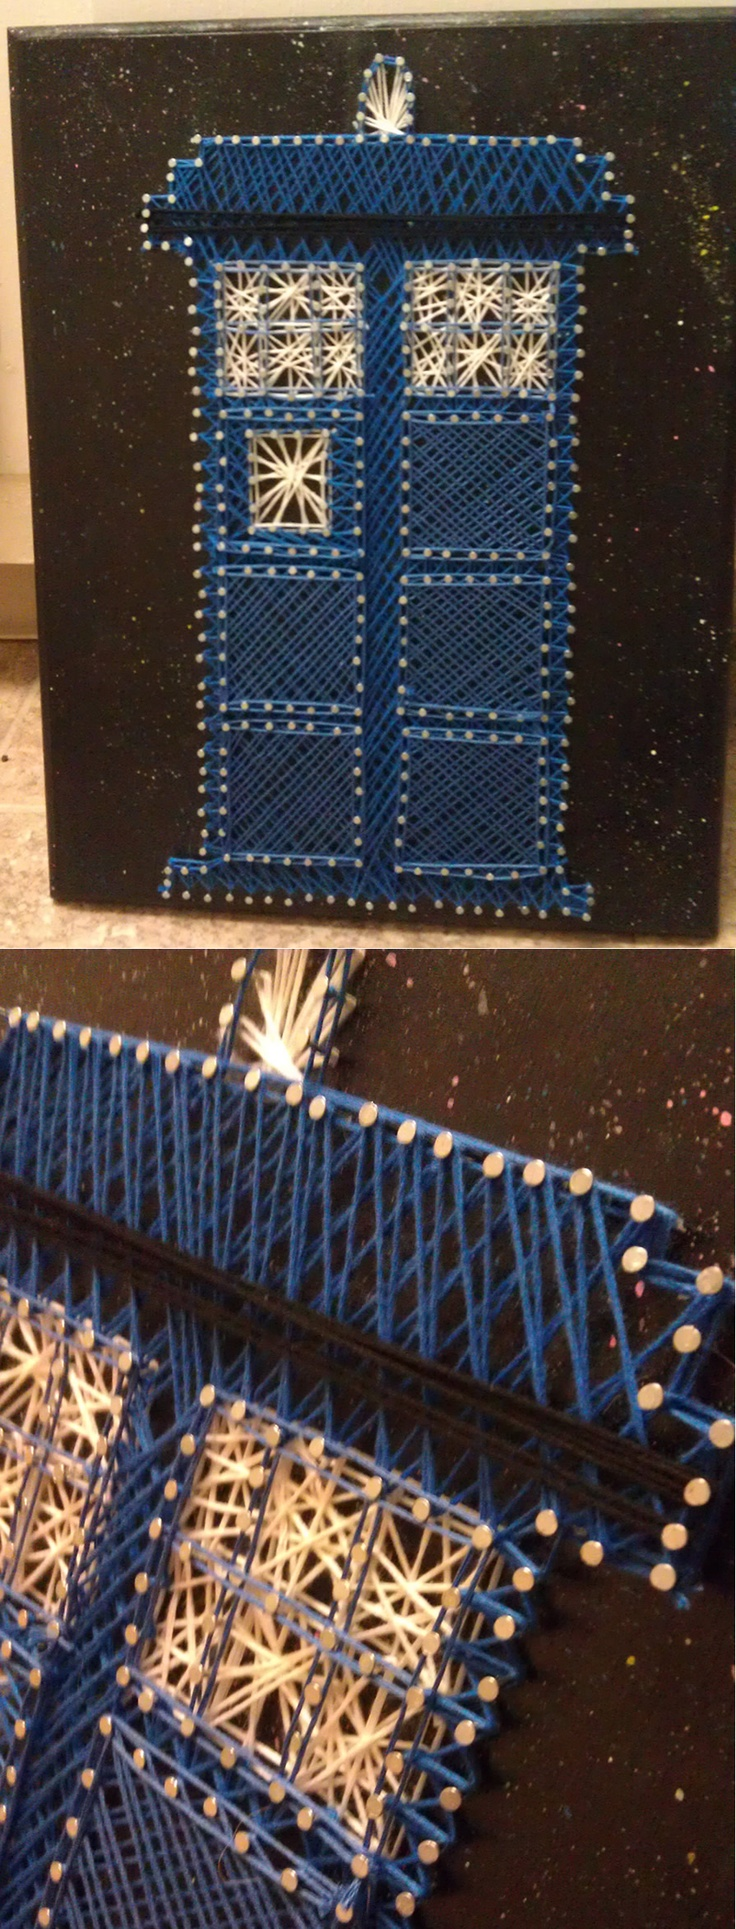 Doctor Who Tardis String Art, by Randi Nentrup.